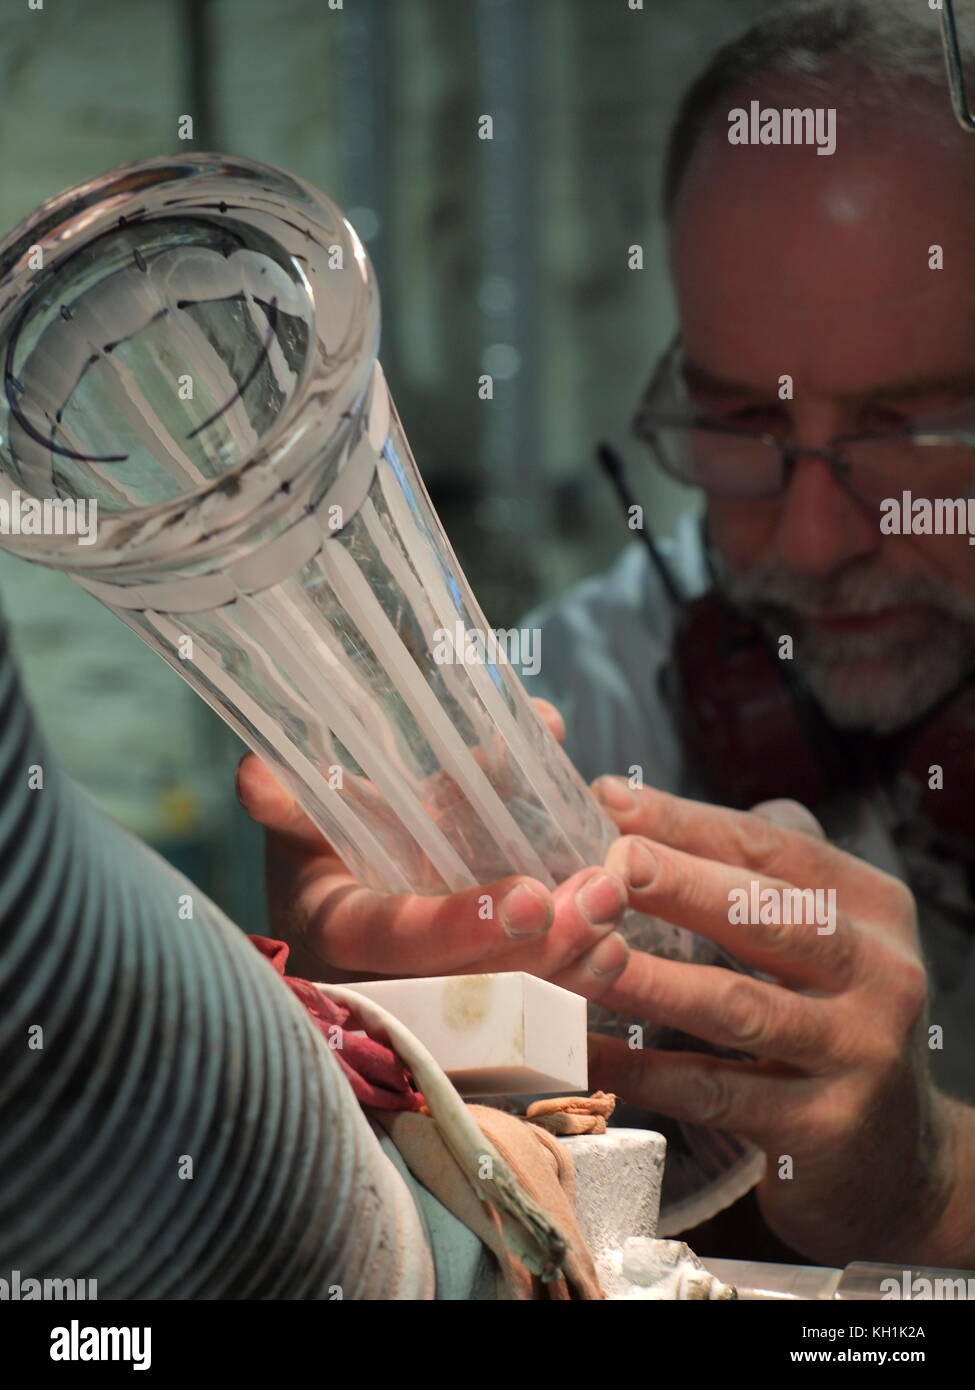 Artisan at work in the Waterford crystal company, Waterford, Ireland - Stock Image